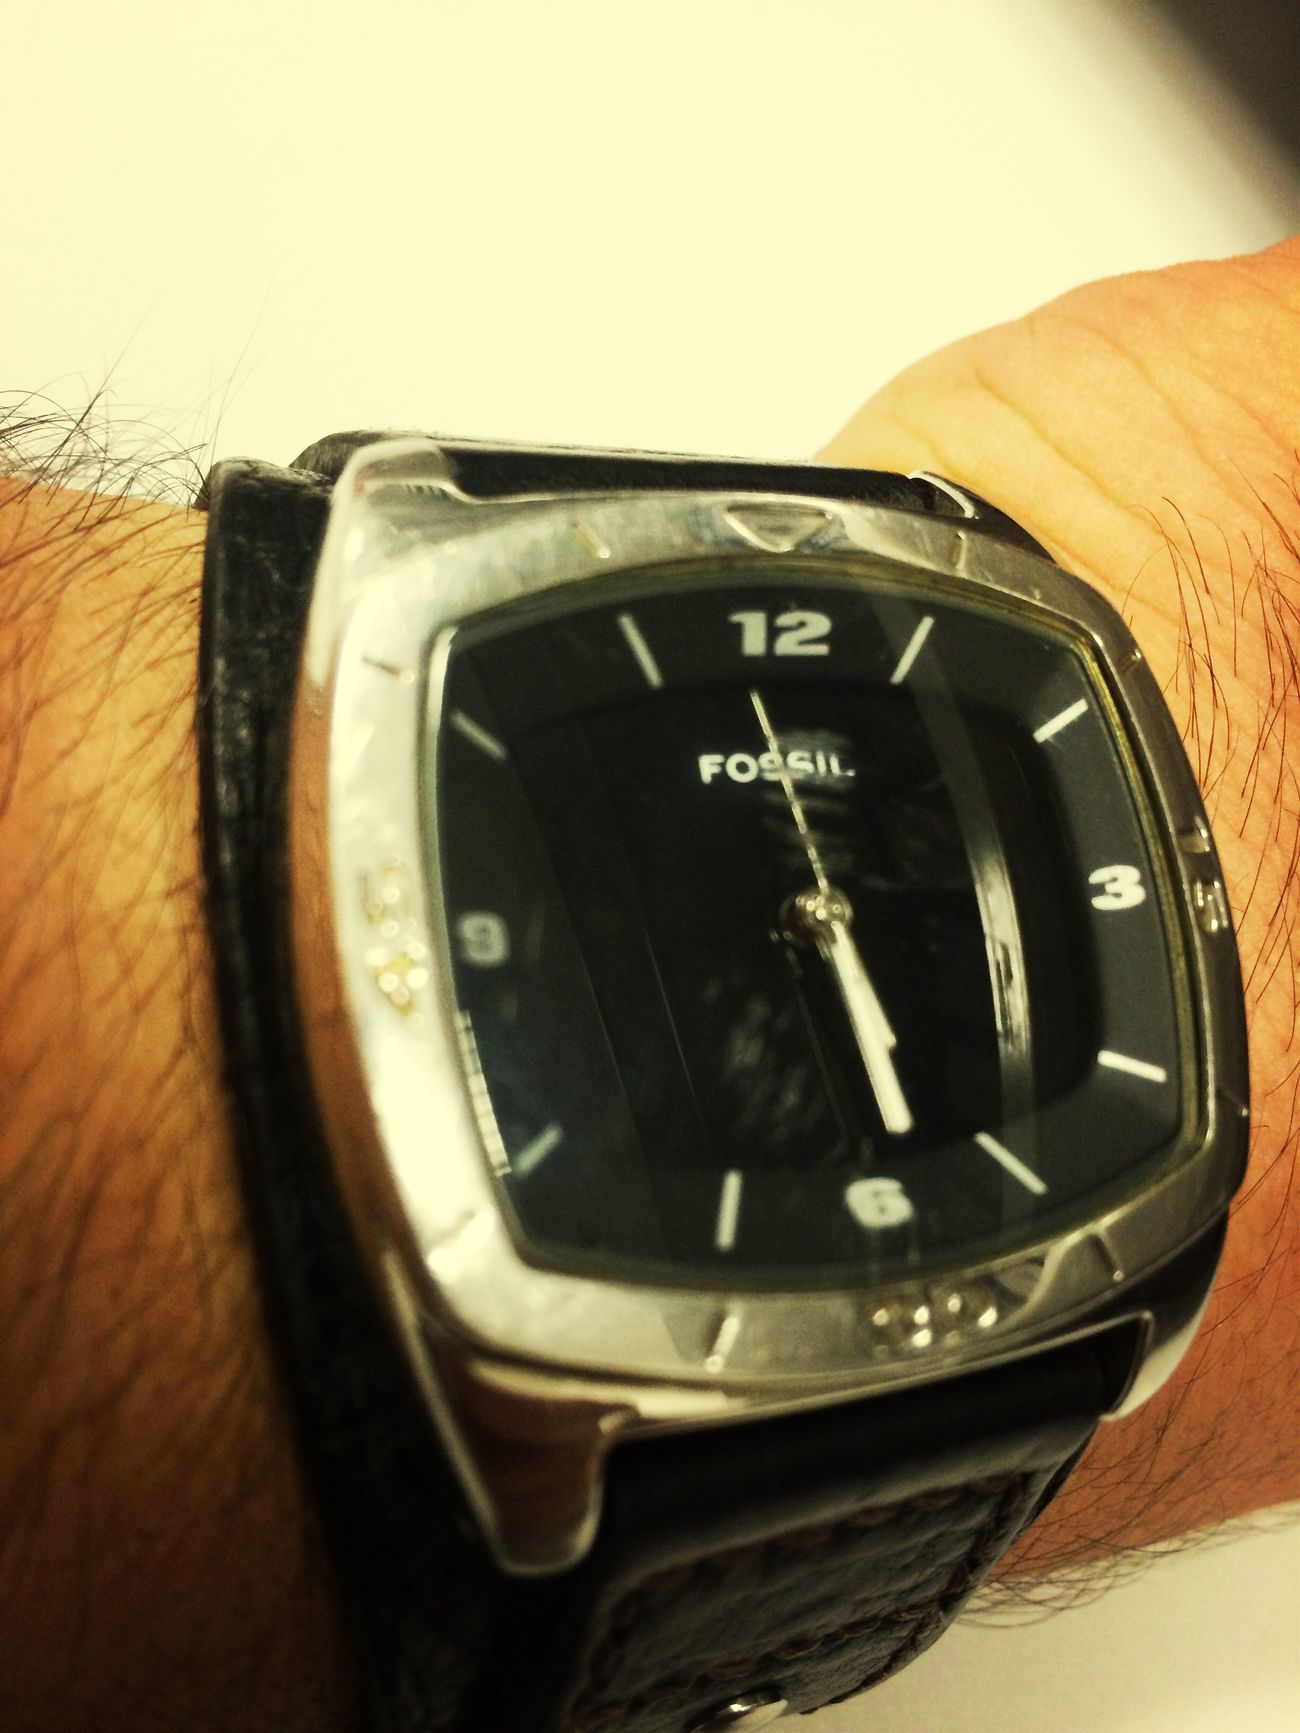 Fossil Watch The EyeEm Facebook Cover Challenge Hello World Needlove Coffee Time